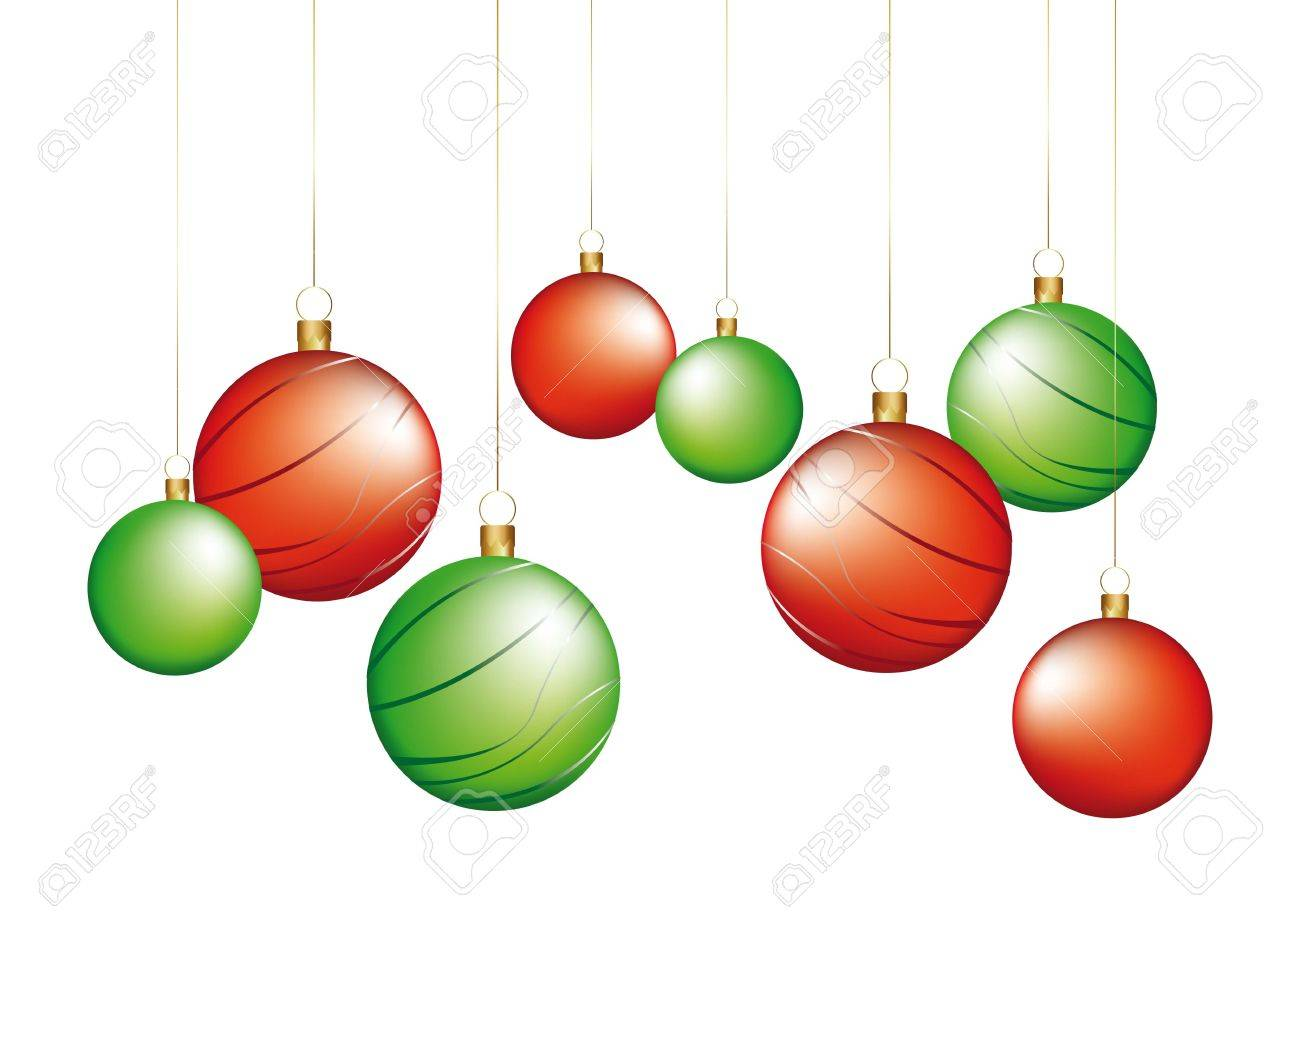 Red And Green Christmas Balls Isolated Illustration Stock Vector